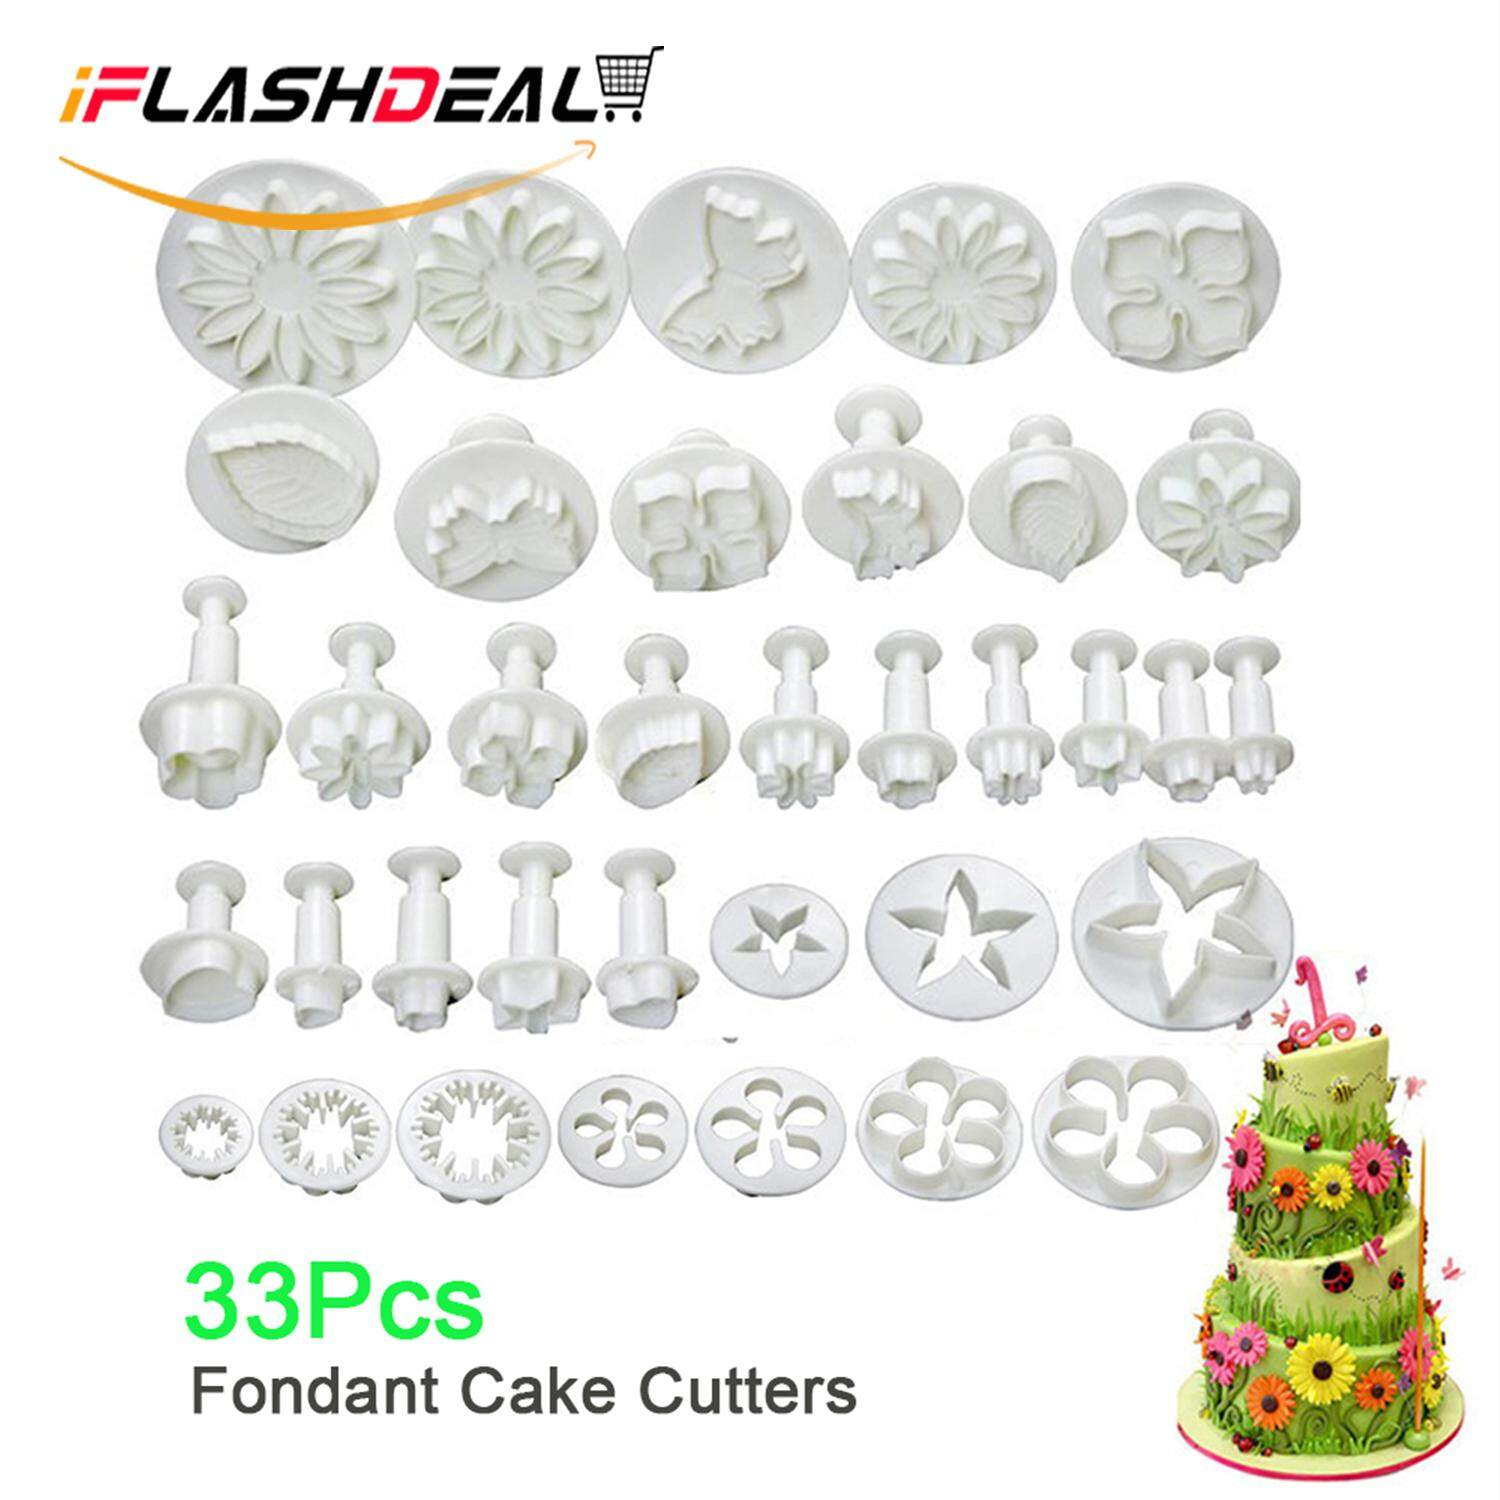 Buy Sell Cheapest Wedzwe Sdadas 33pcs Best Quality Product Deals Bosch Gsb 550 Professional Mesin Bor Tembok X Line 33 Pcs Iflashdeal 10 Styles Fondant Cake Cutters Set Sugarcraft Homemade Cookie Decorating Utensils Tools